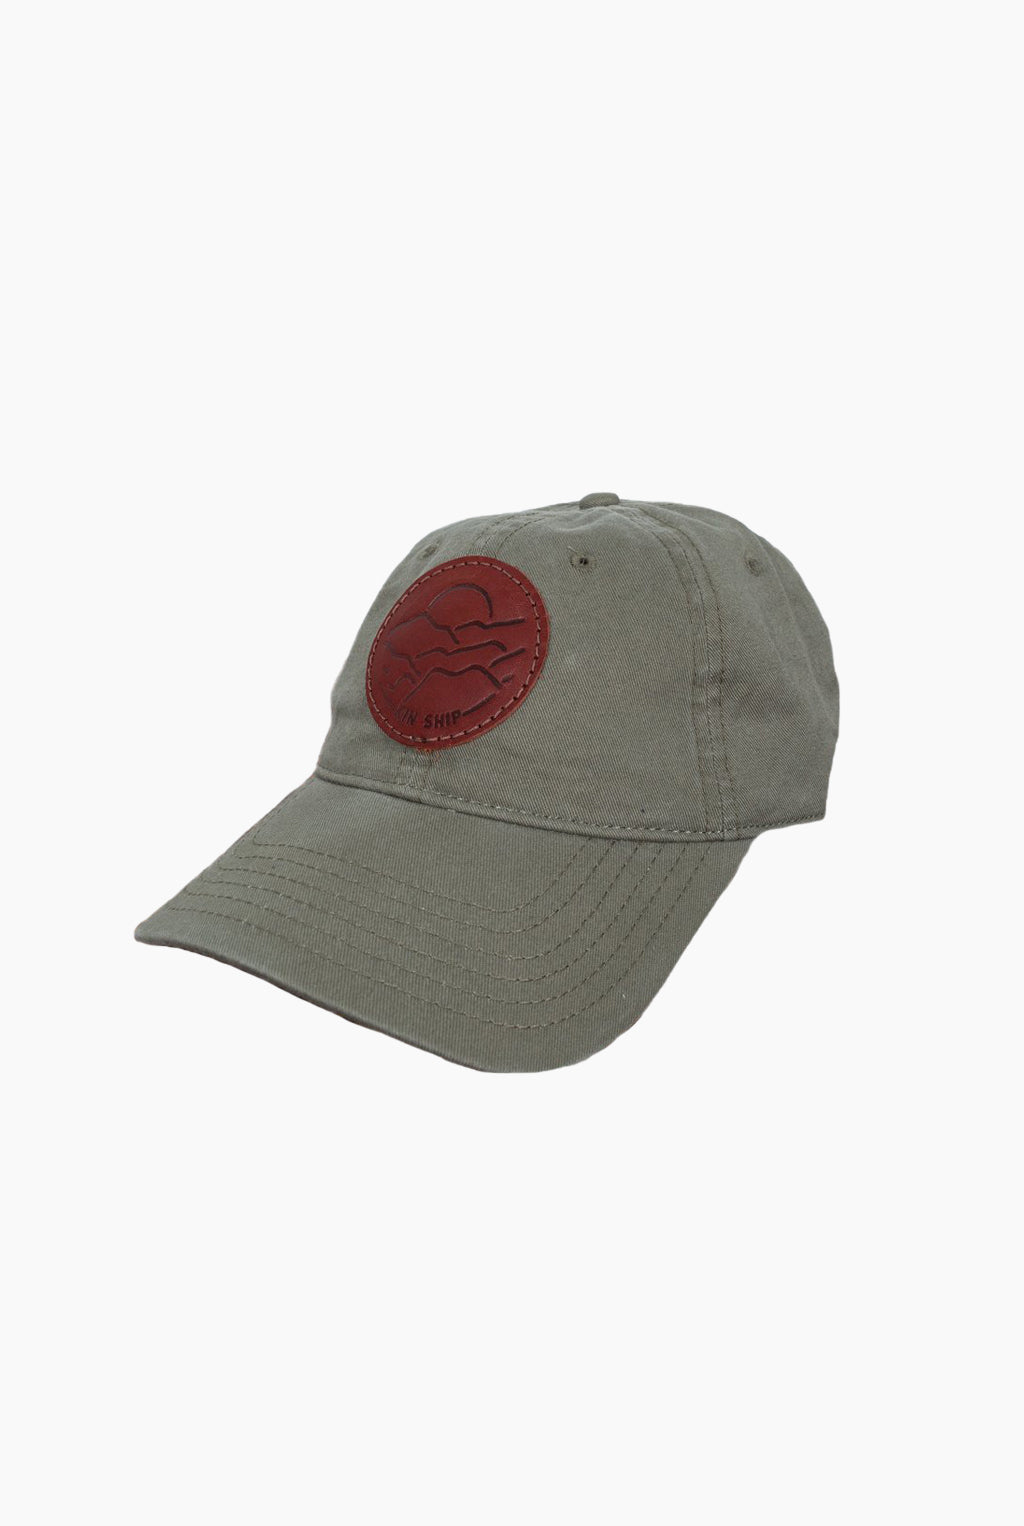 mountain cap, olive